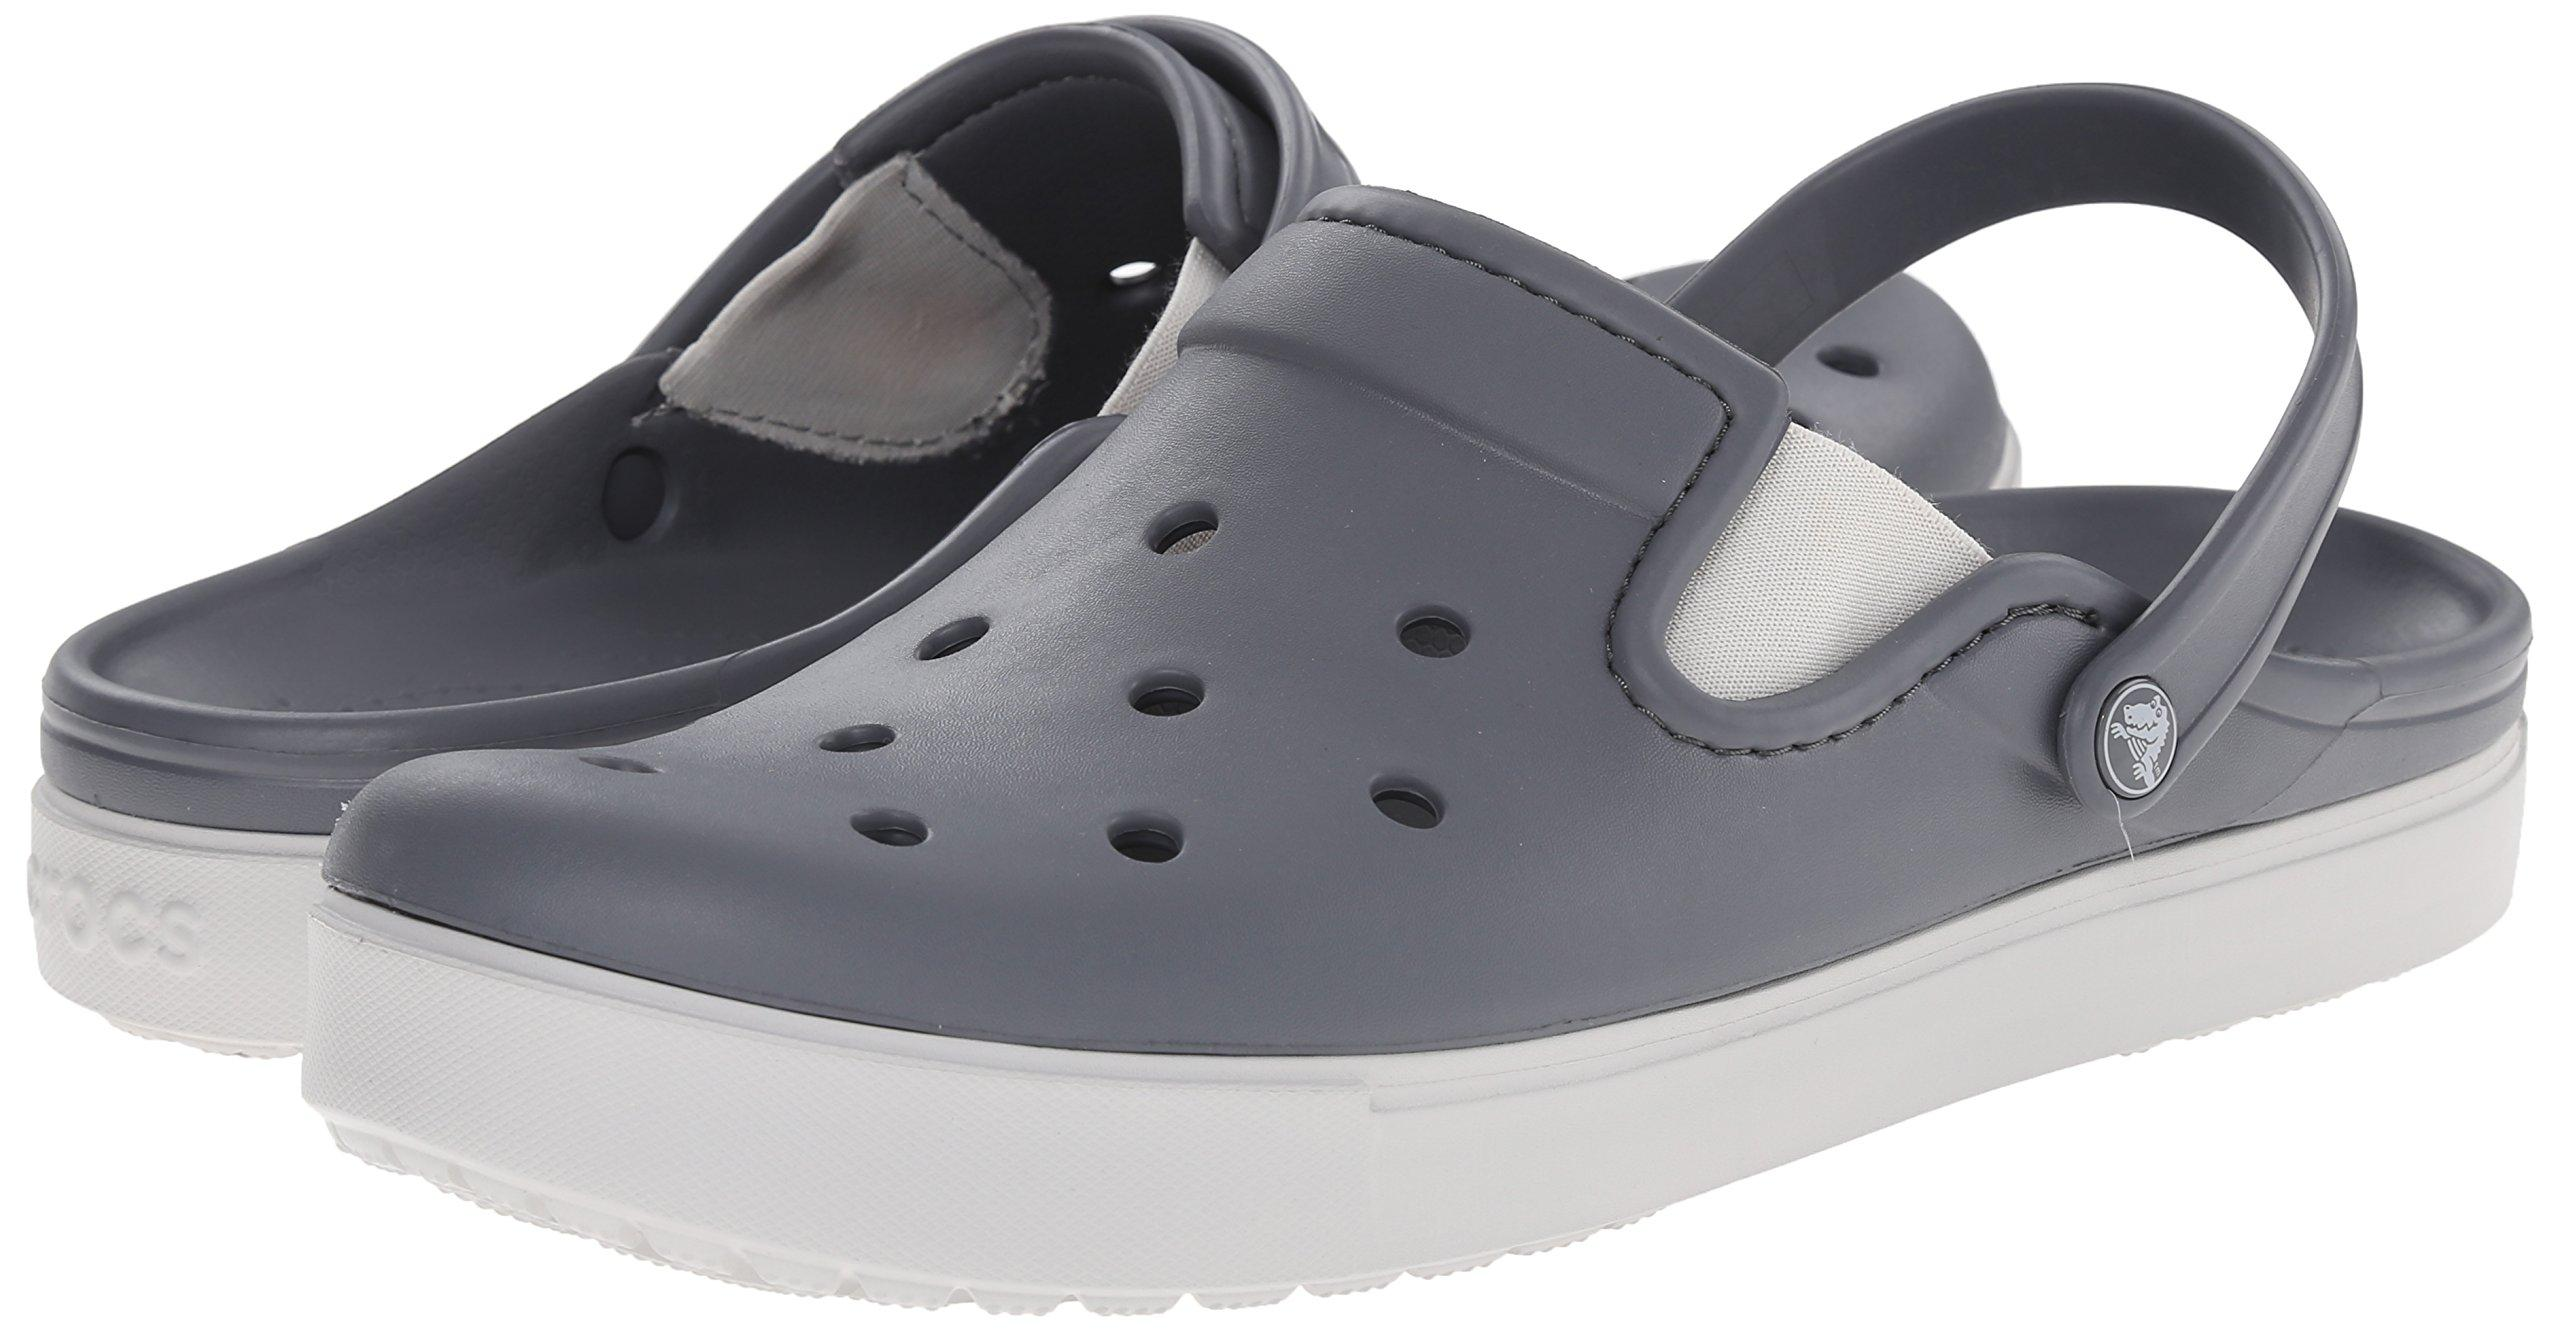 3a16cee58 Authentic Crocs™ Citilane Clog Charcoal   Pearl White